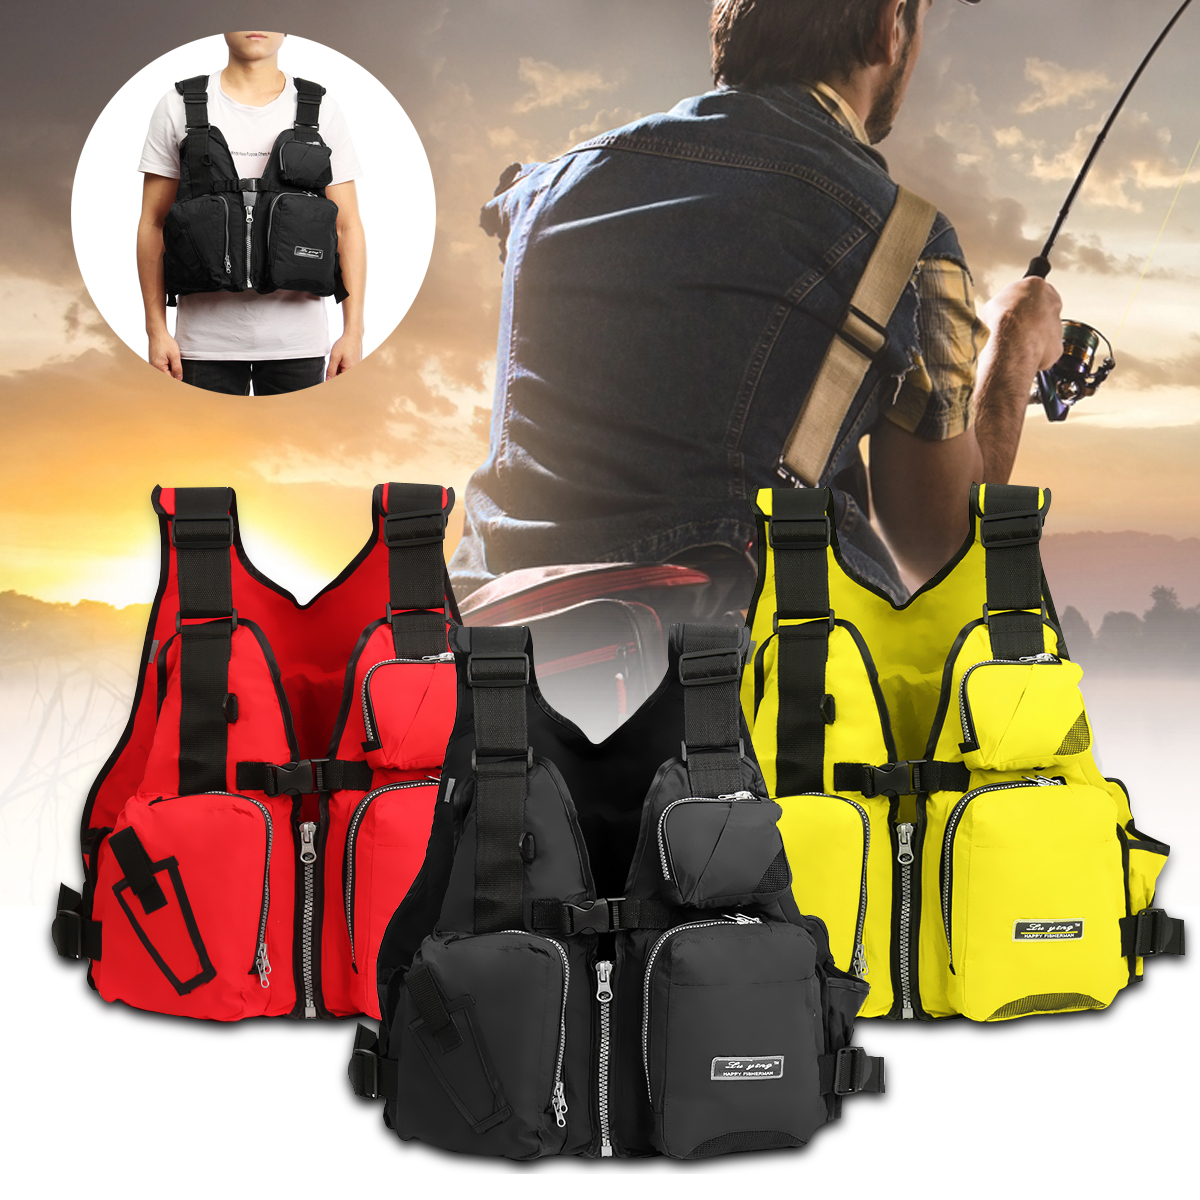 Adult Universal Breathable EPE Fishing Life Jacket Fly Fishing Vest Sailing Swimming Buoyancy Aid Waistcoat Boating... by